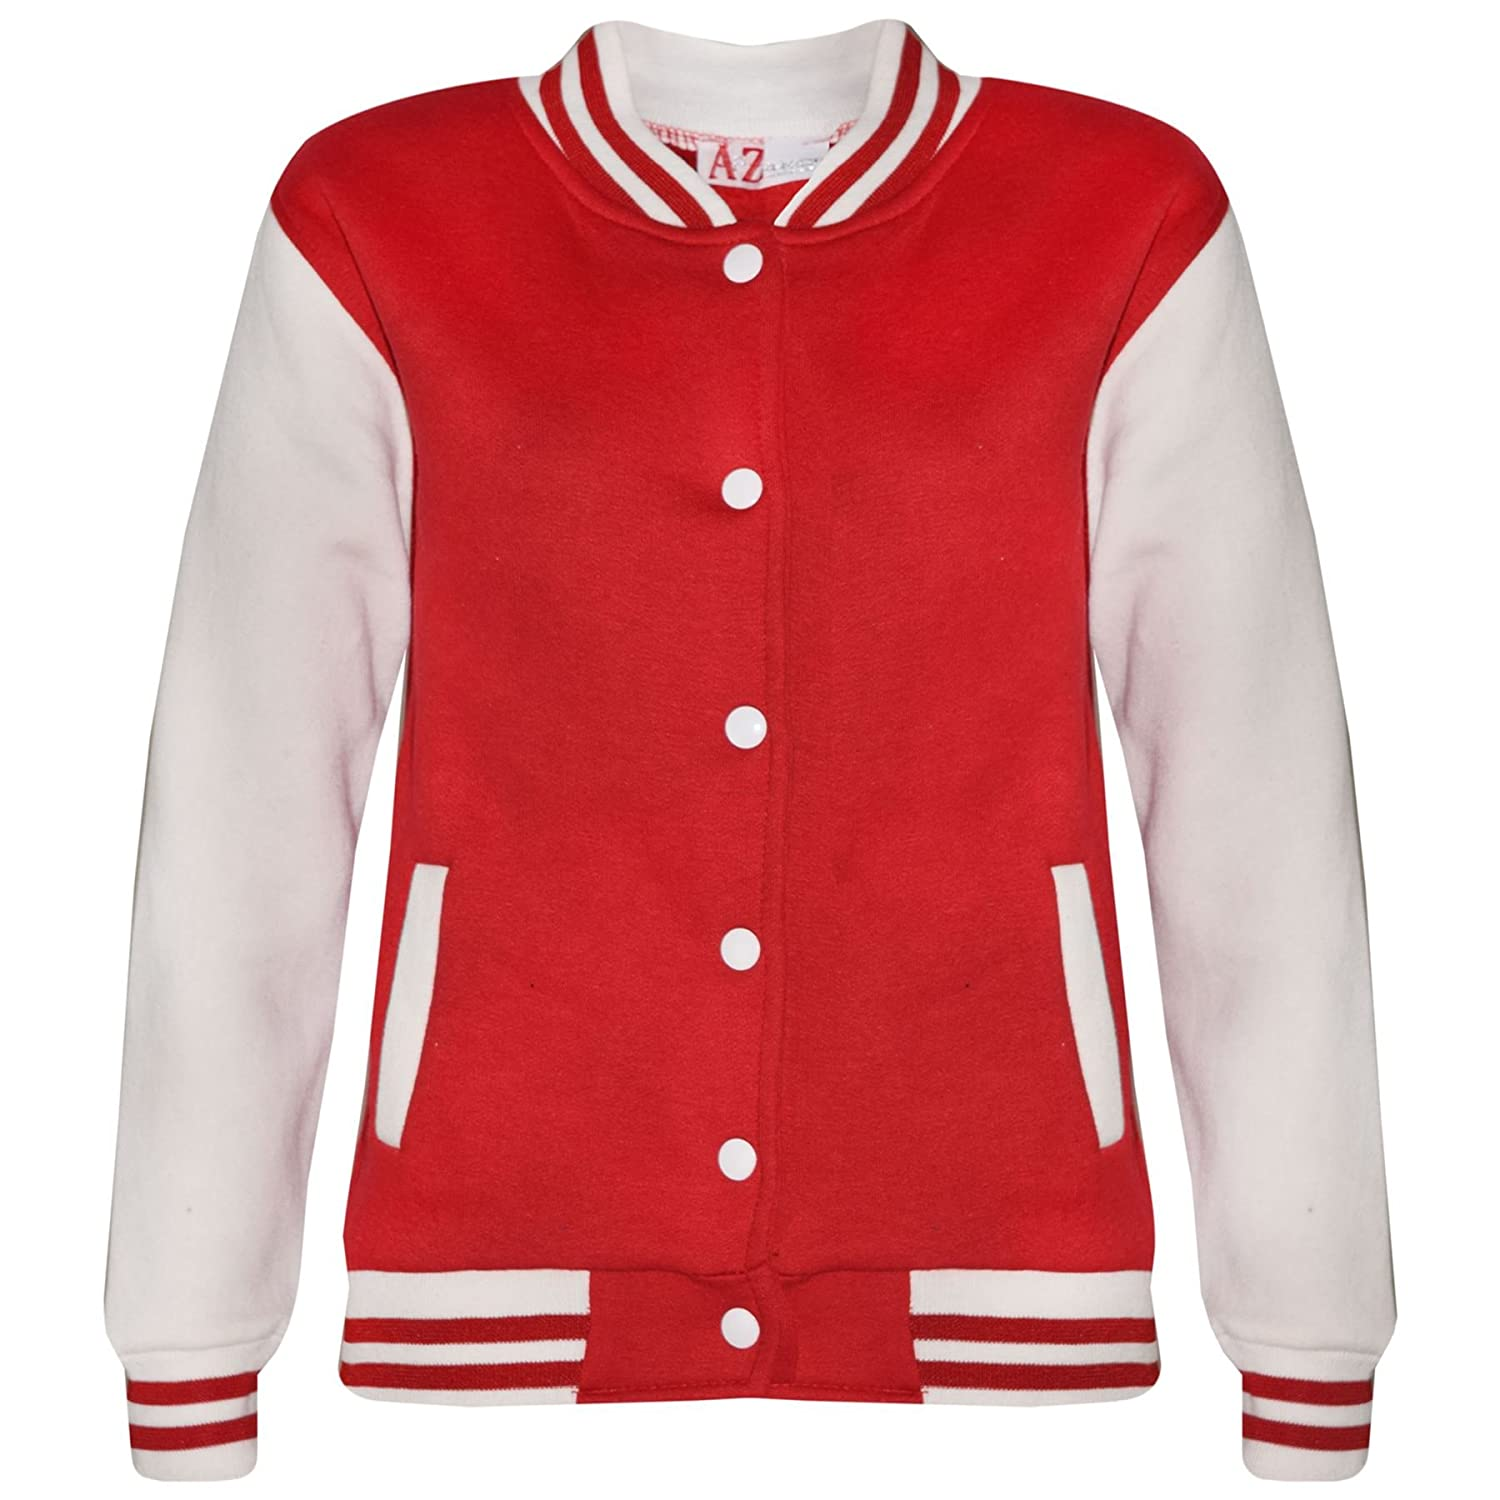 A2Z 4 Kids® Kids Girls Boys Baseball Jacket Varsity Style Fashion Plain Red School Jackets Top New Age 5 6 7 8 9 10 11 12 13 Years